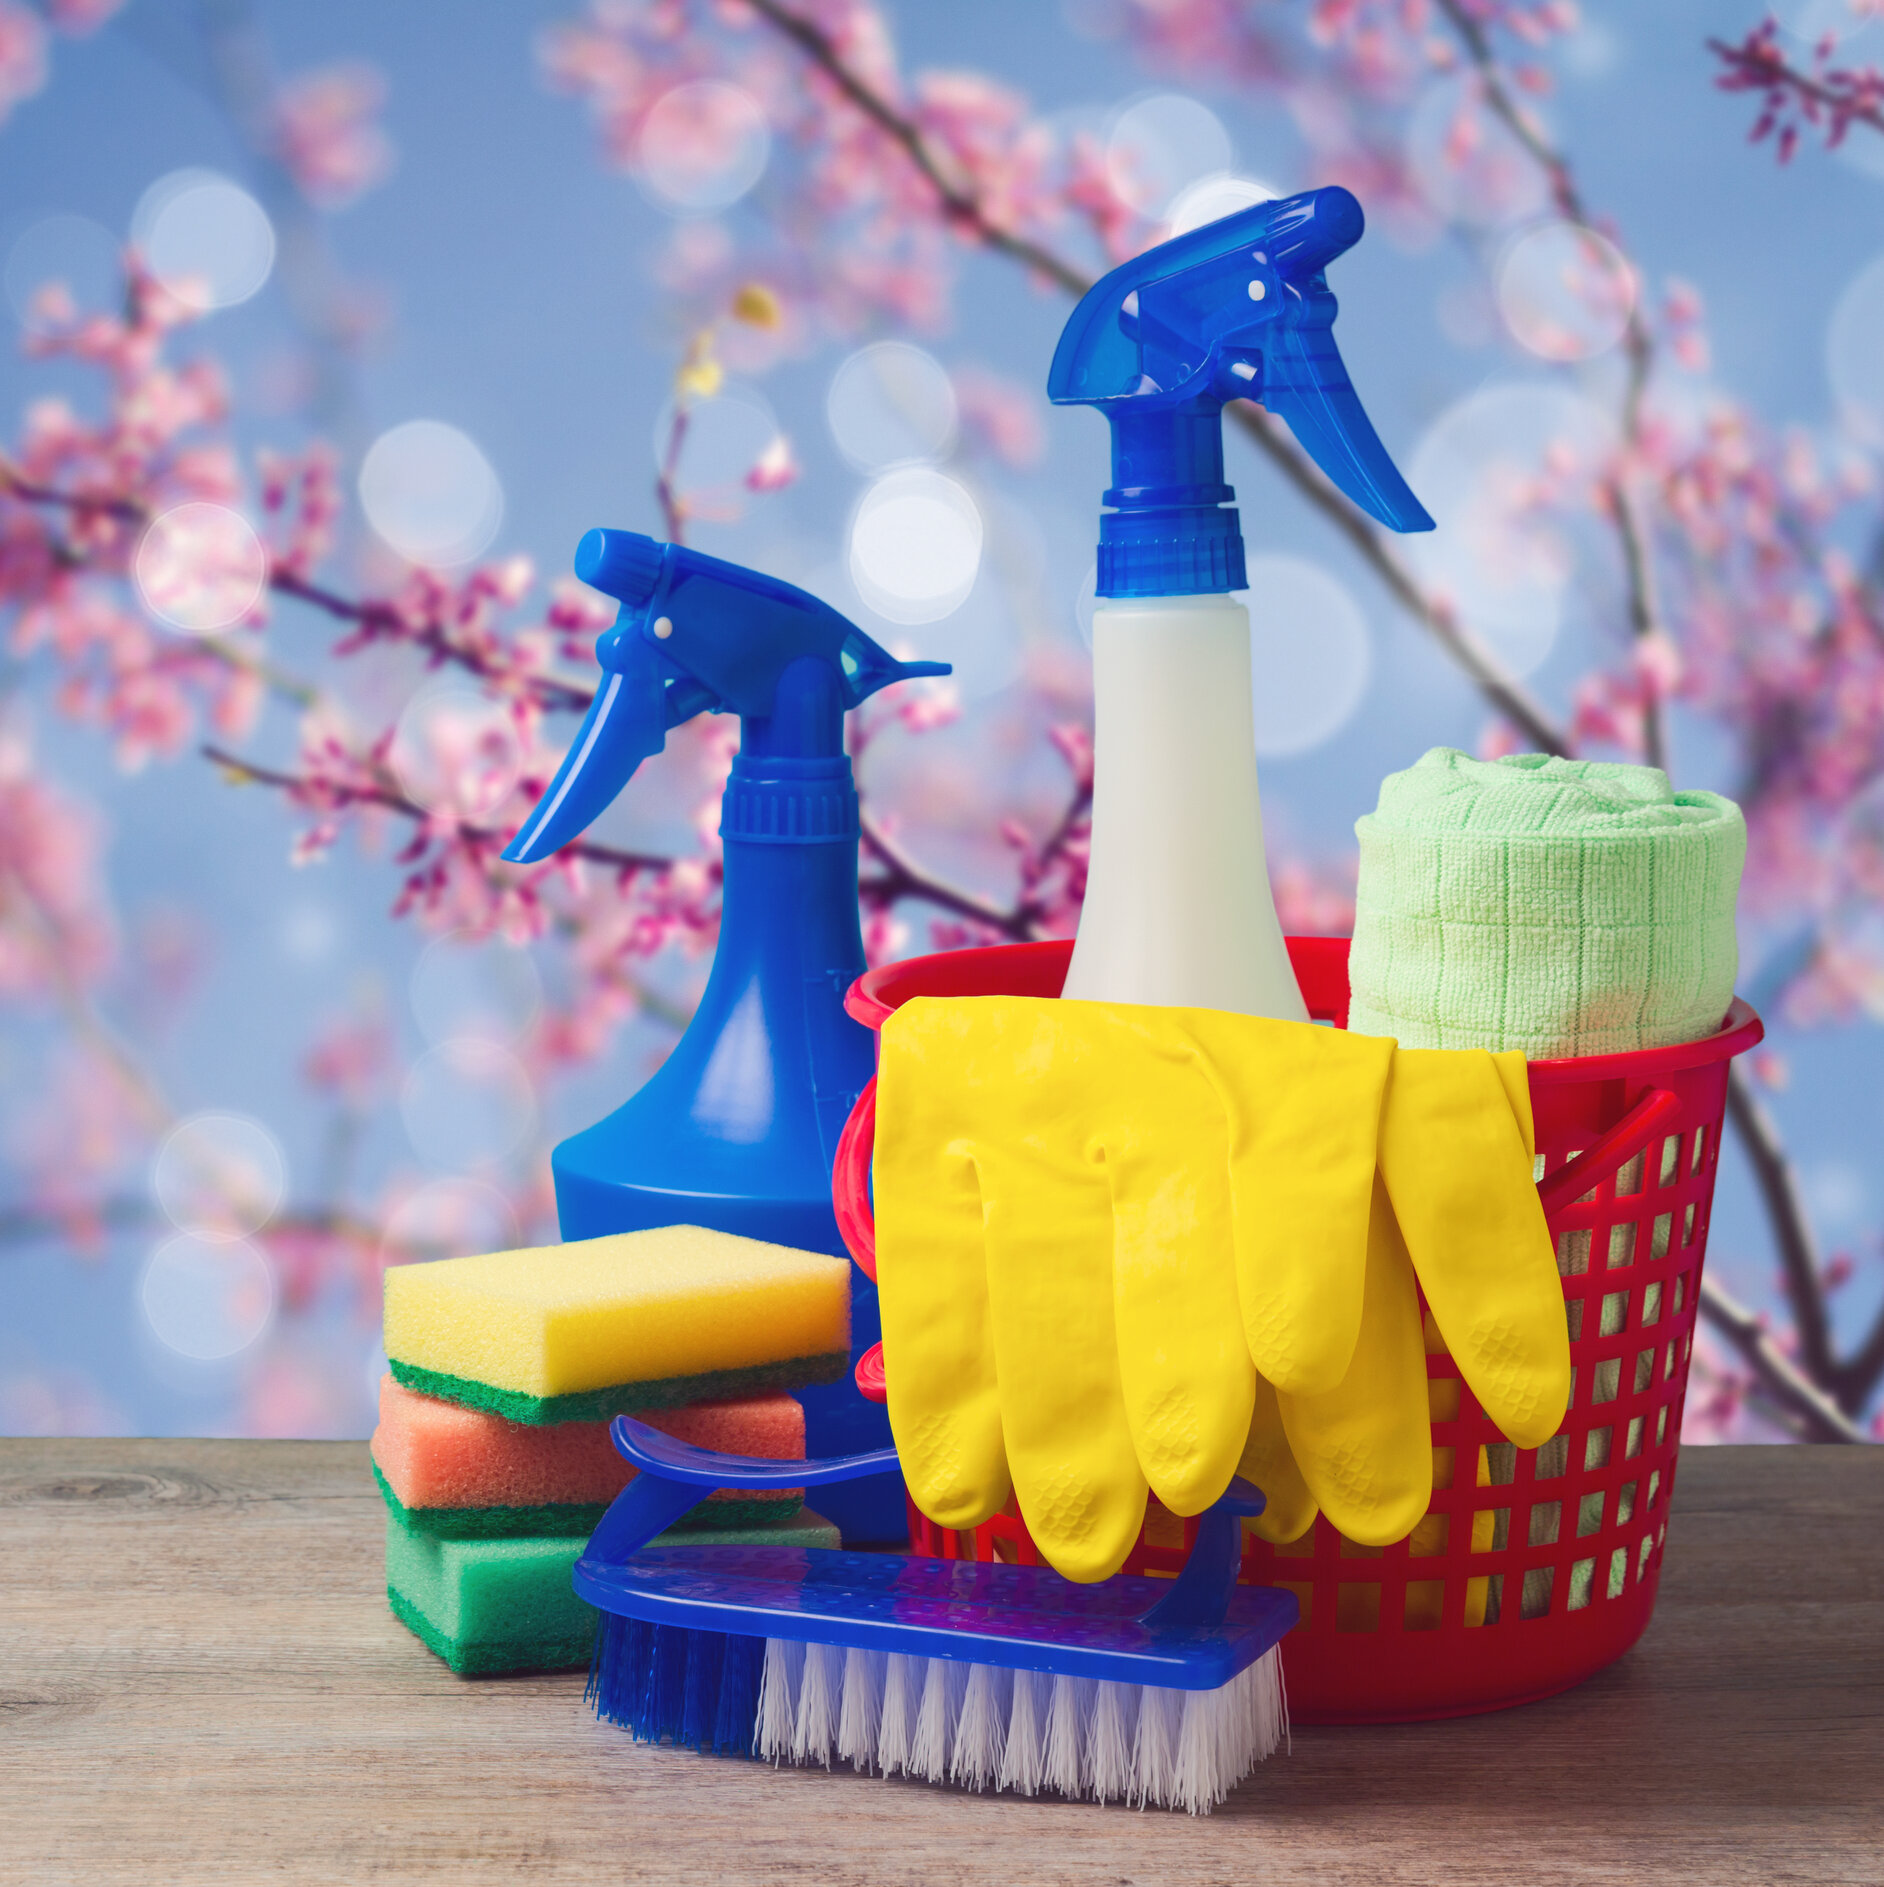 Bucket of spring cleaning supplies